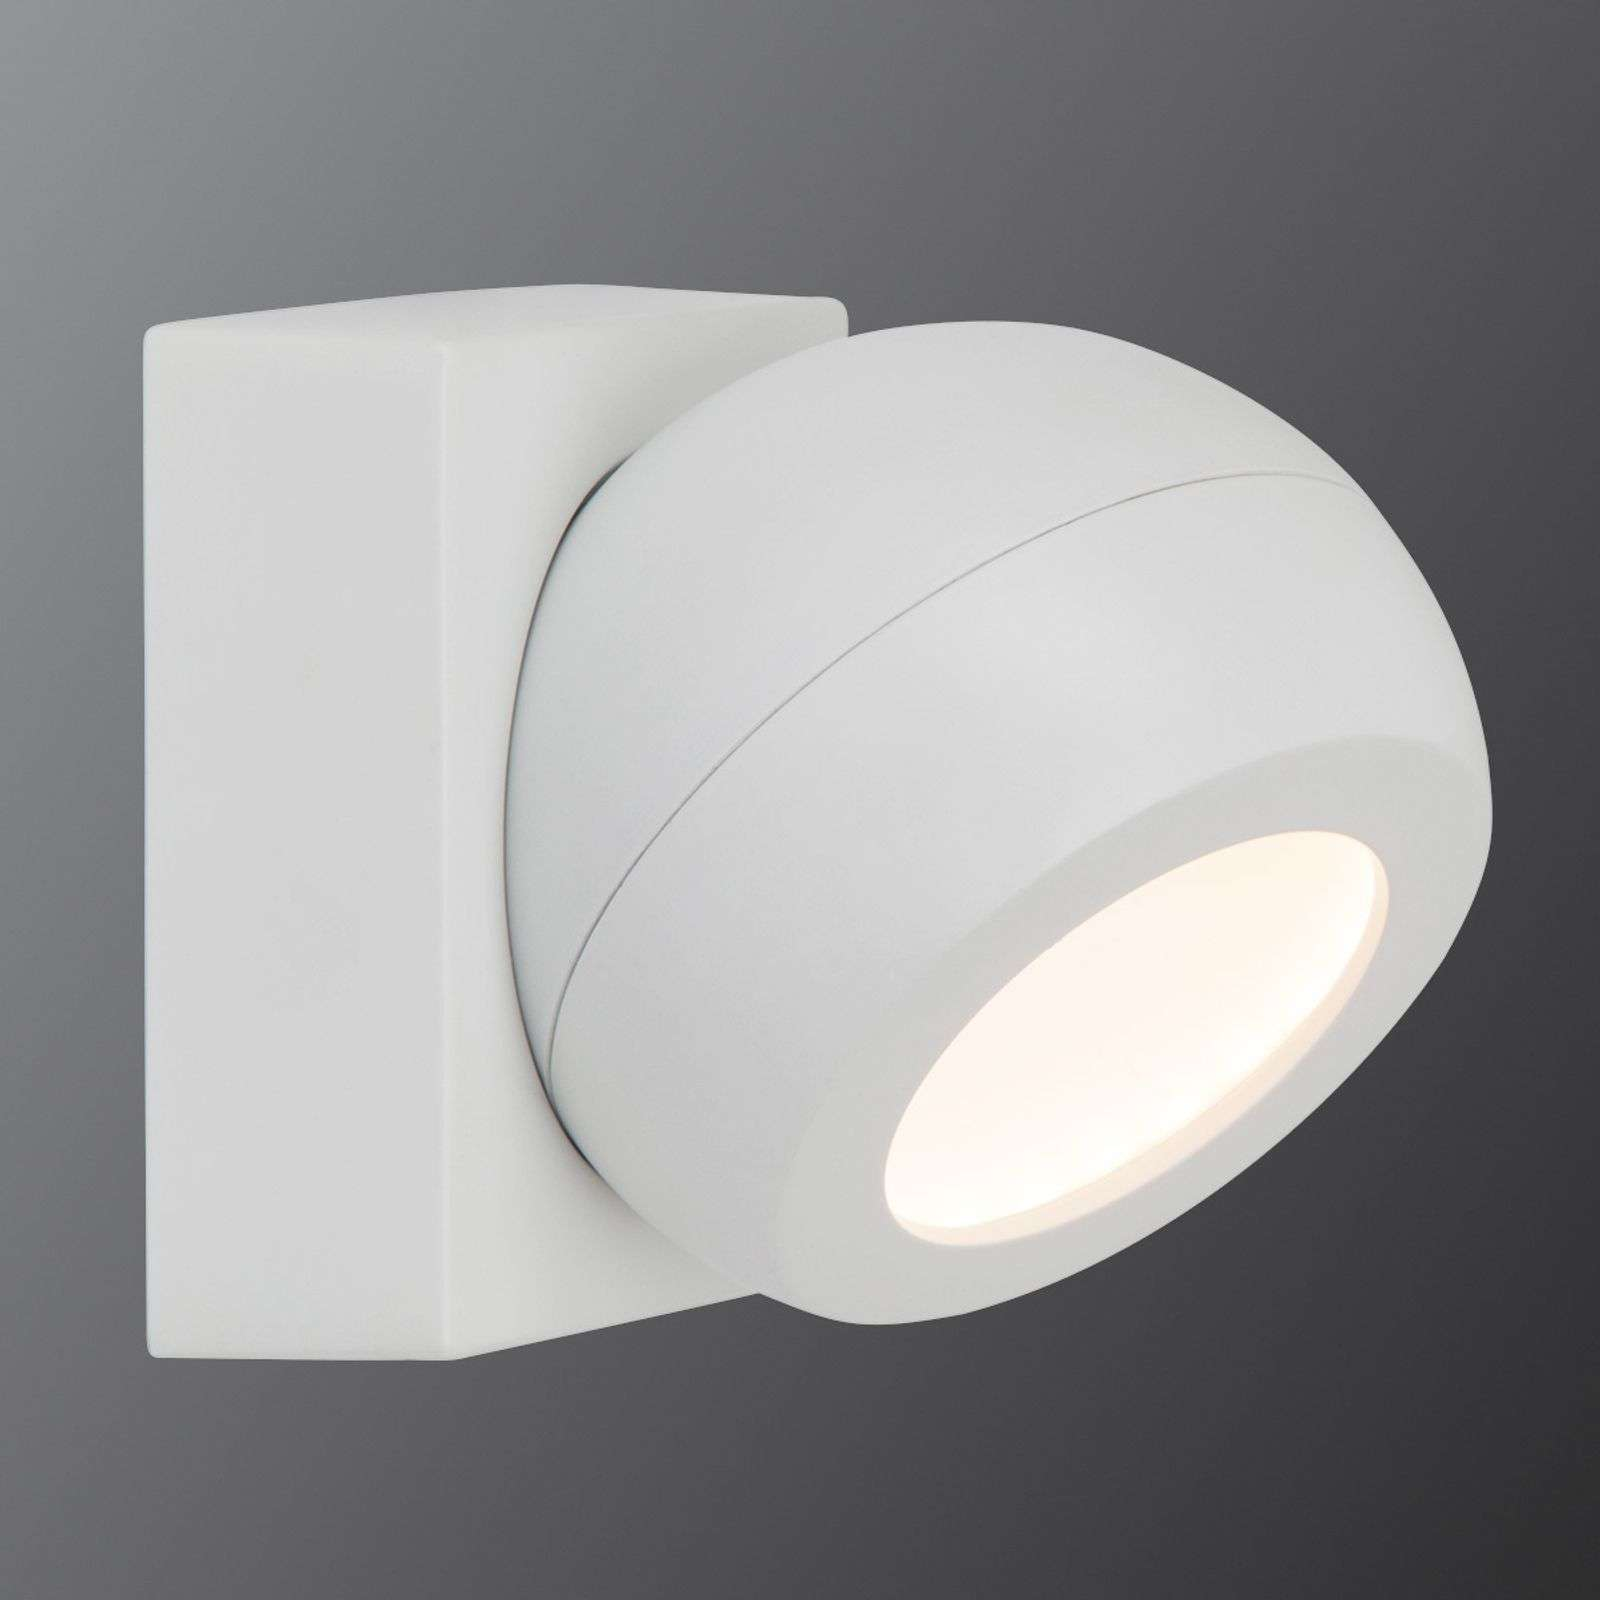 Foco de pared LED Balleo de AEG, atenuable